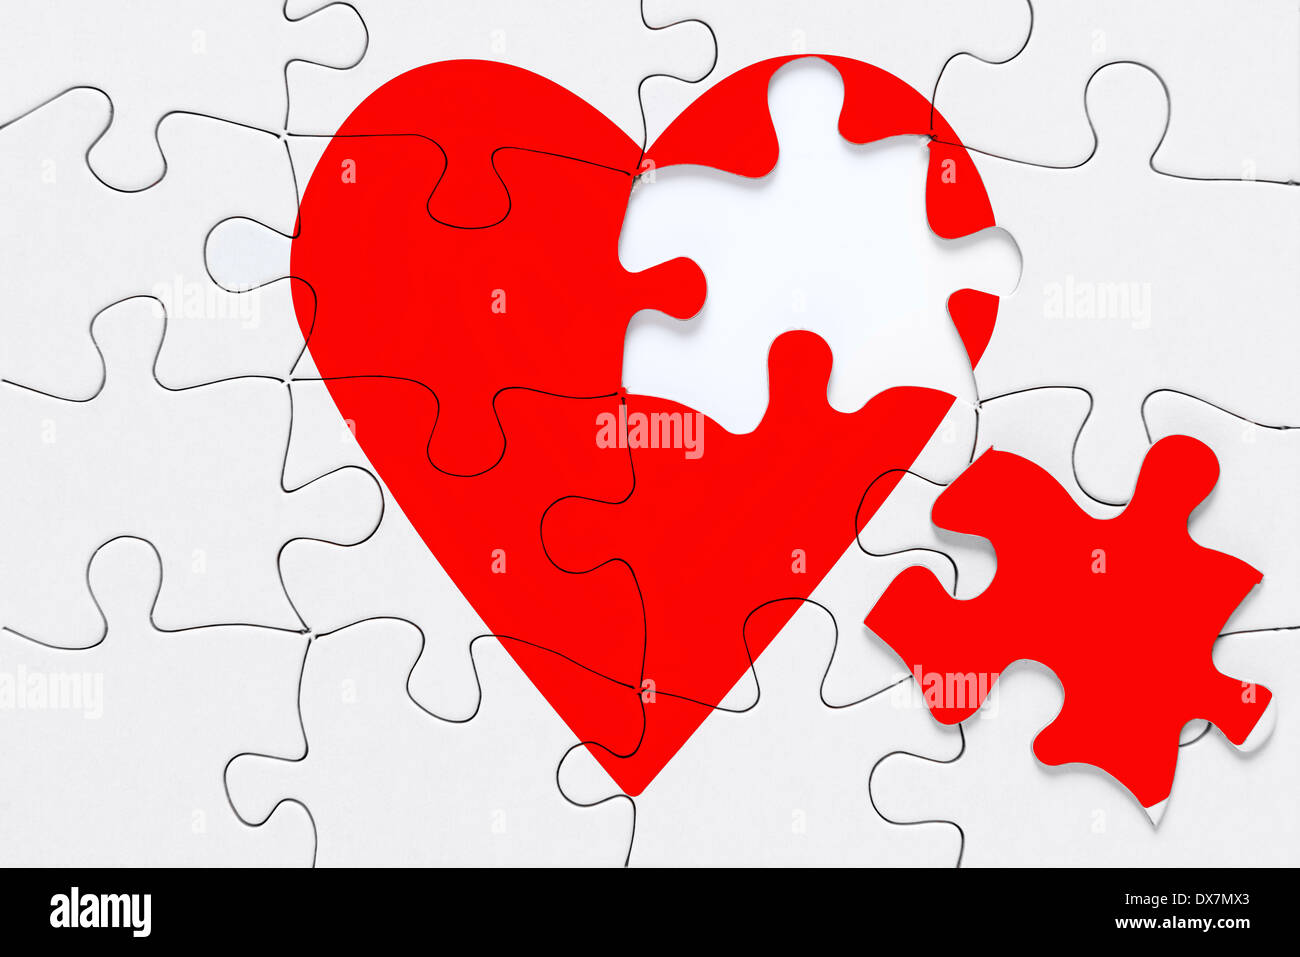 A red heart jigsaw puzzle with a piece on the side, good image for a broken heart, love, romance and Valentine themes. - Stock Image